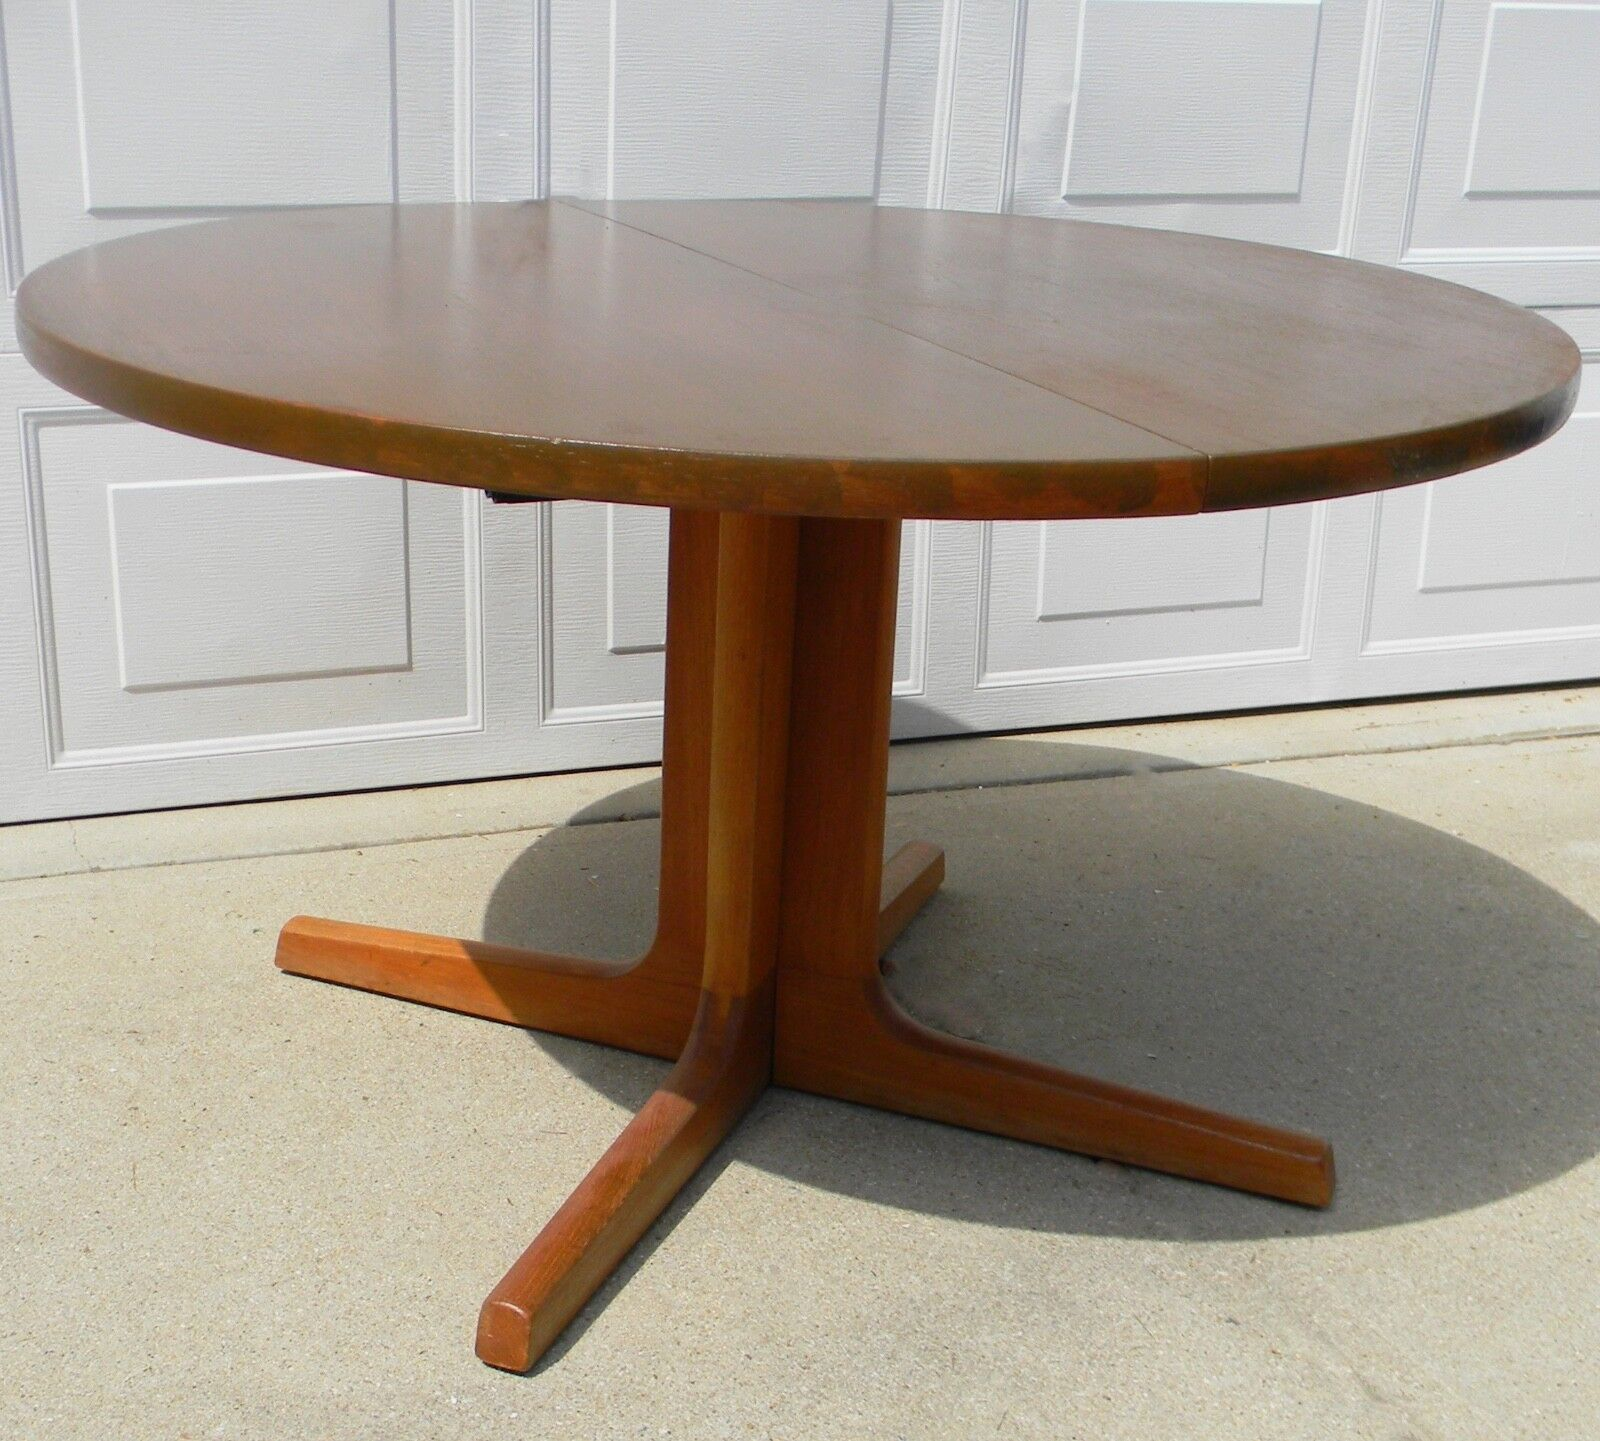 Mid Century Modern Skovby Furniture Round Danish Teak Dining Table (two  Leaves) 1 Of 8Only 1 Available Mid Century Modern Skovby Furniture ...